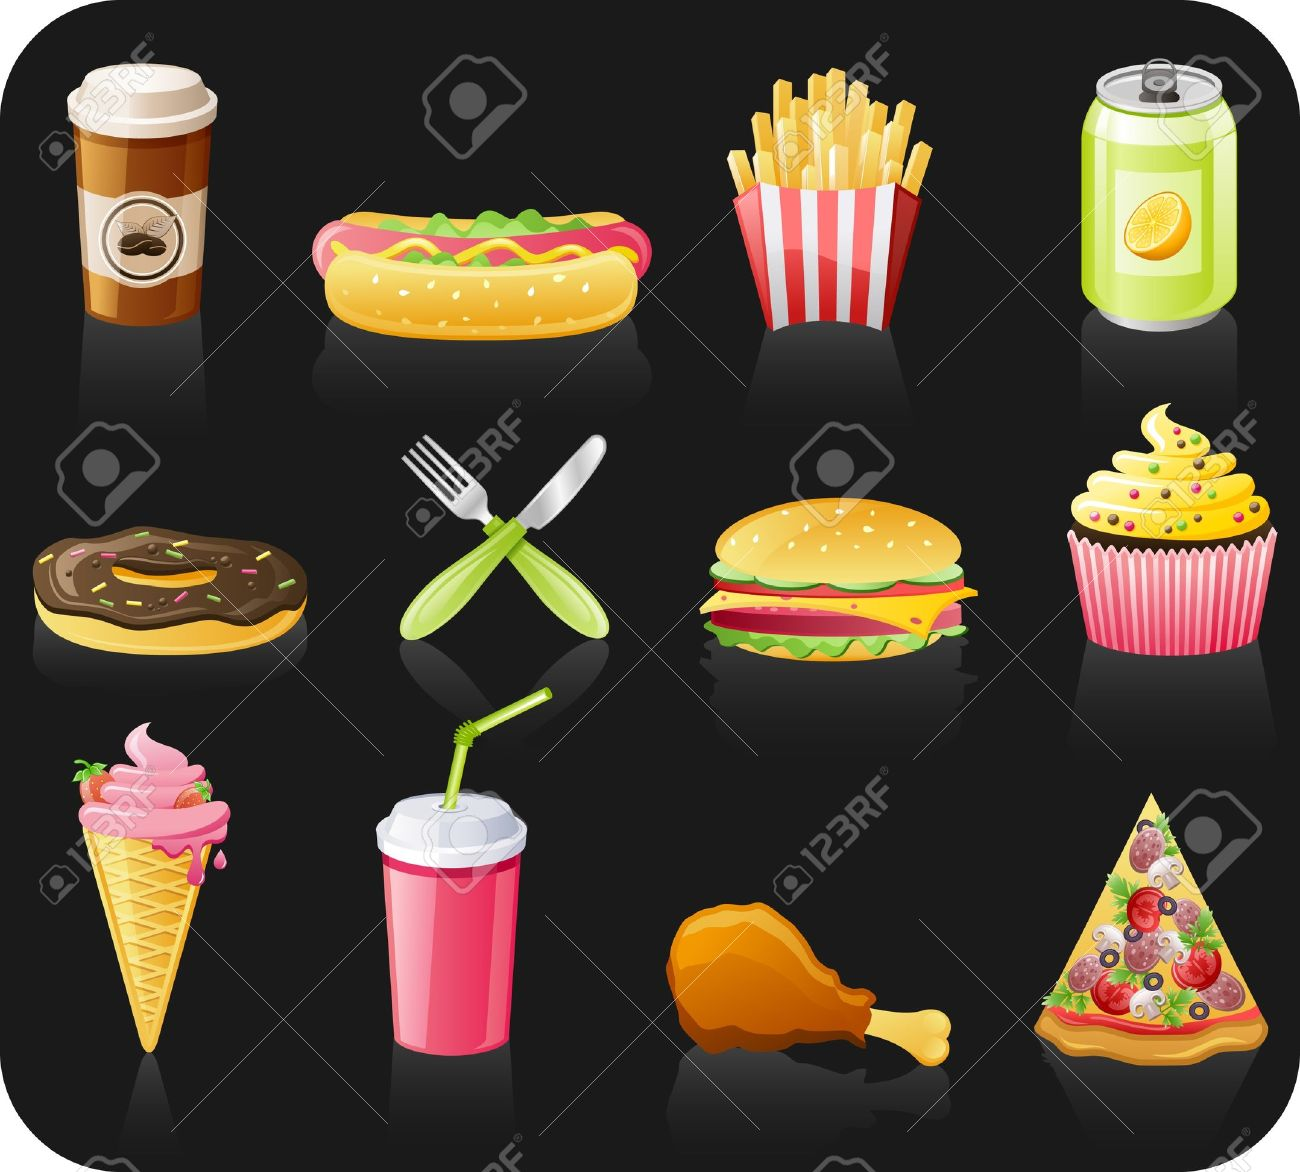 Fast food black background  icon set: coffee, hot dog, french fries, doughnut, fork, burger, fruitcake, ice-cream, drink, chicken, pizza Stock Vector - 9524782